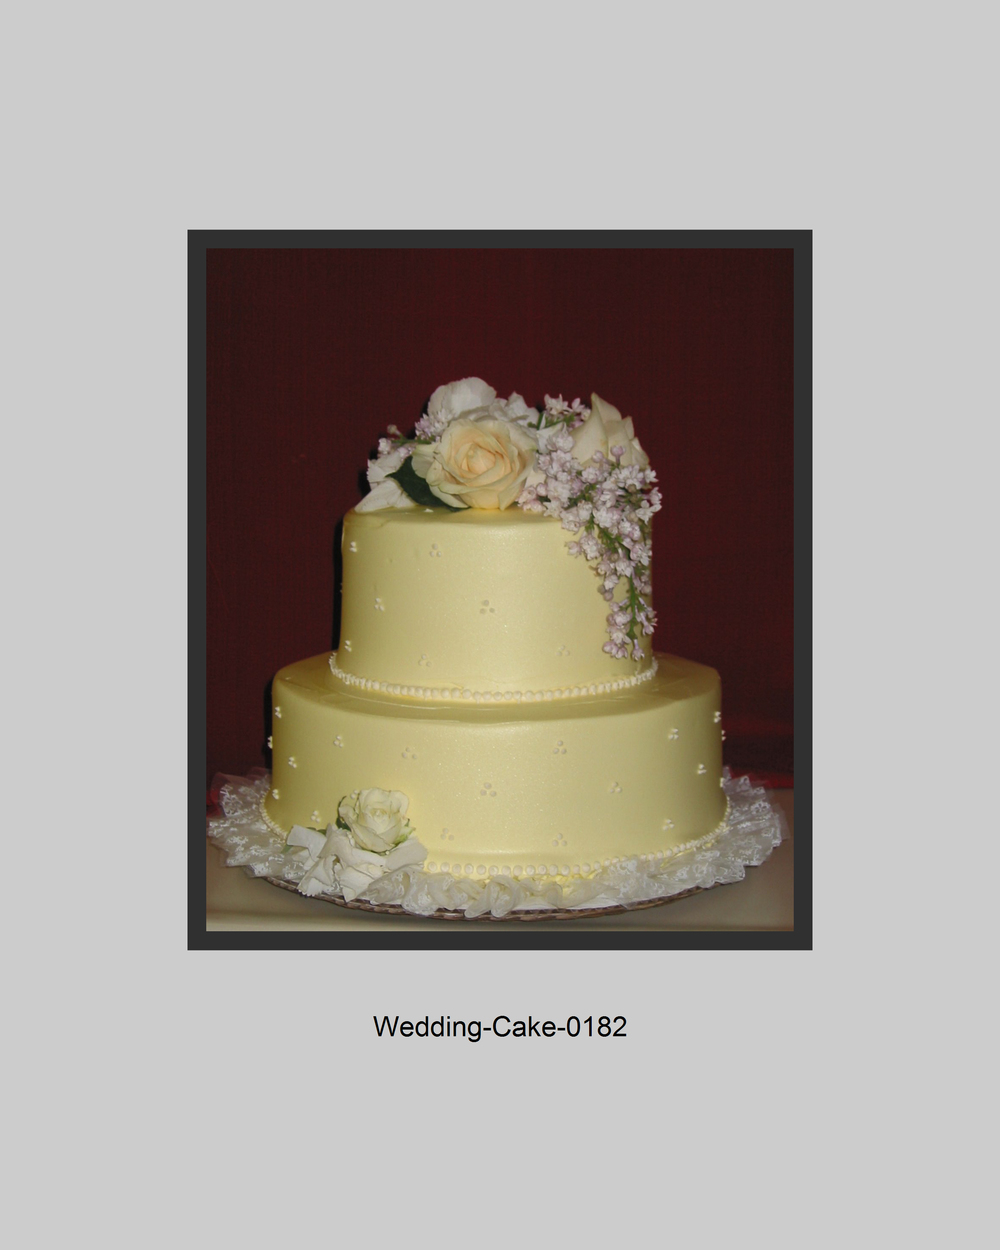 Wedding-Cake-Prints-0182.jpg